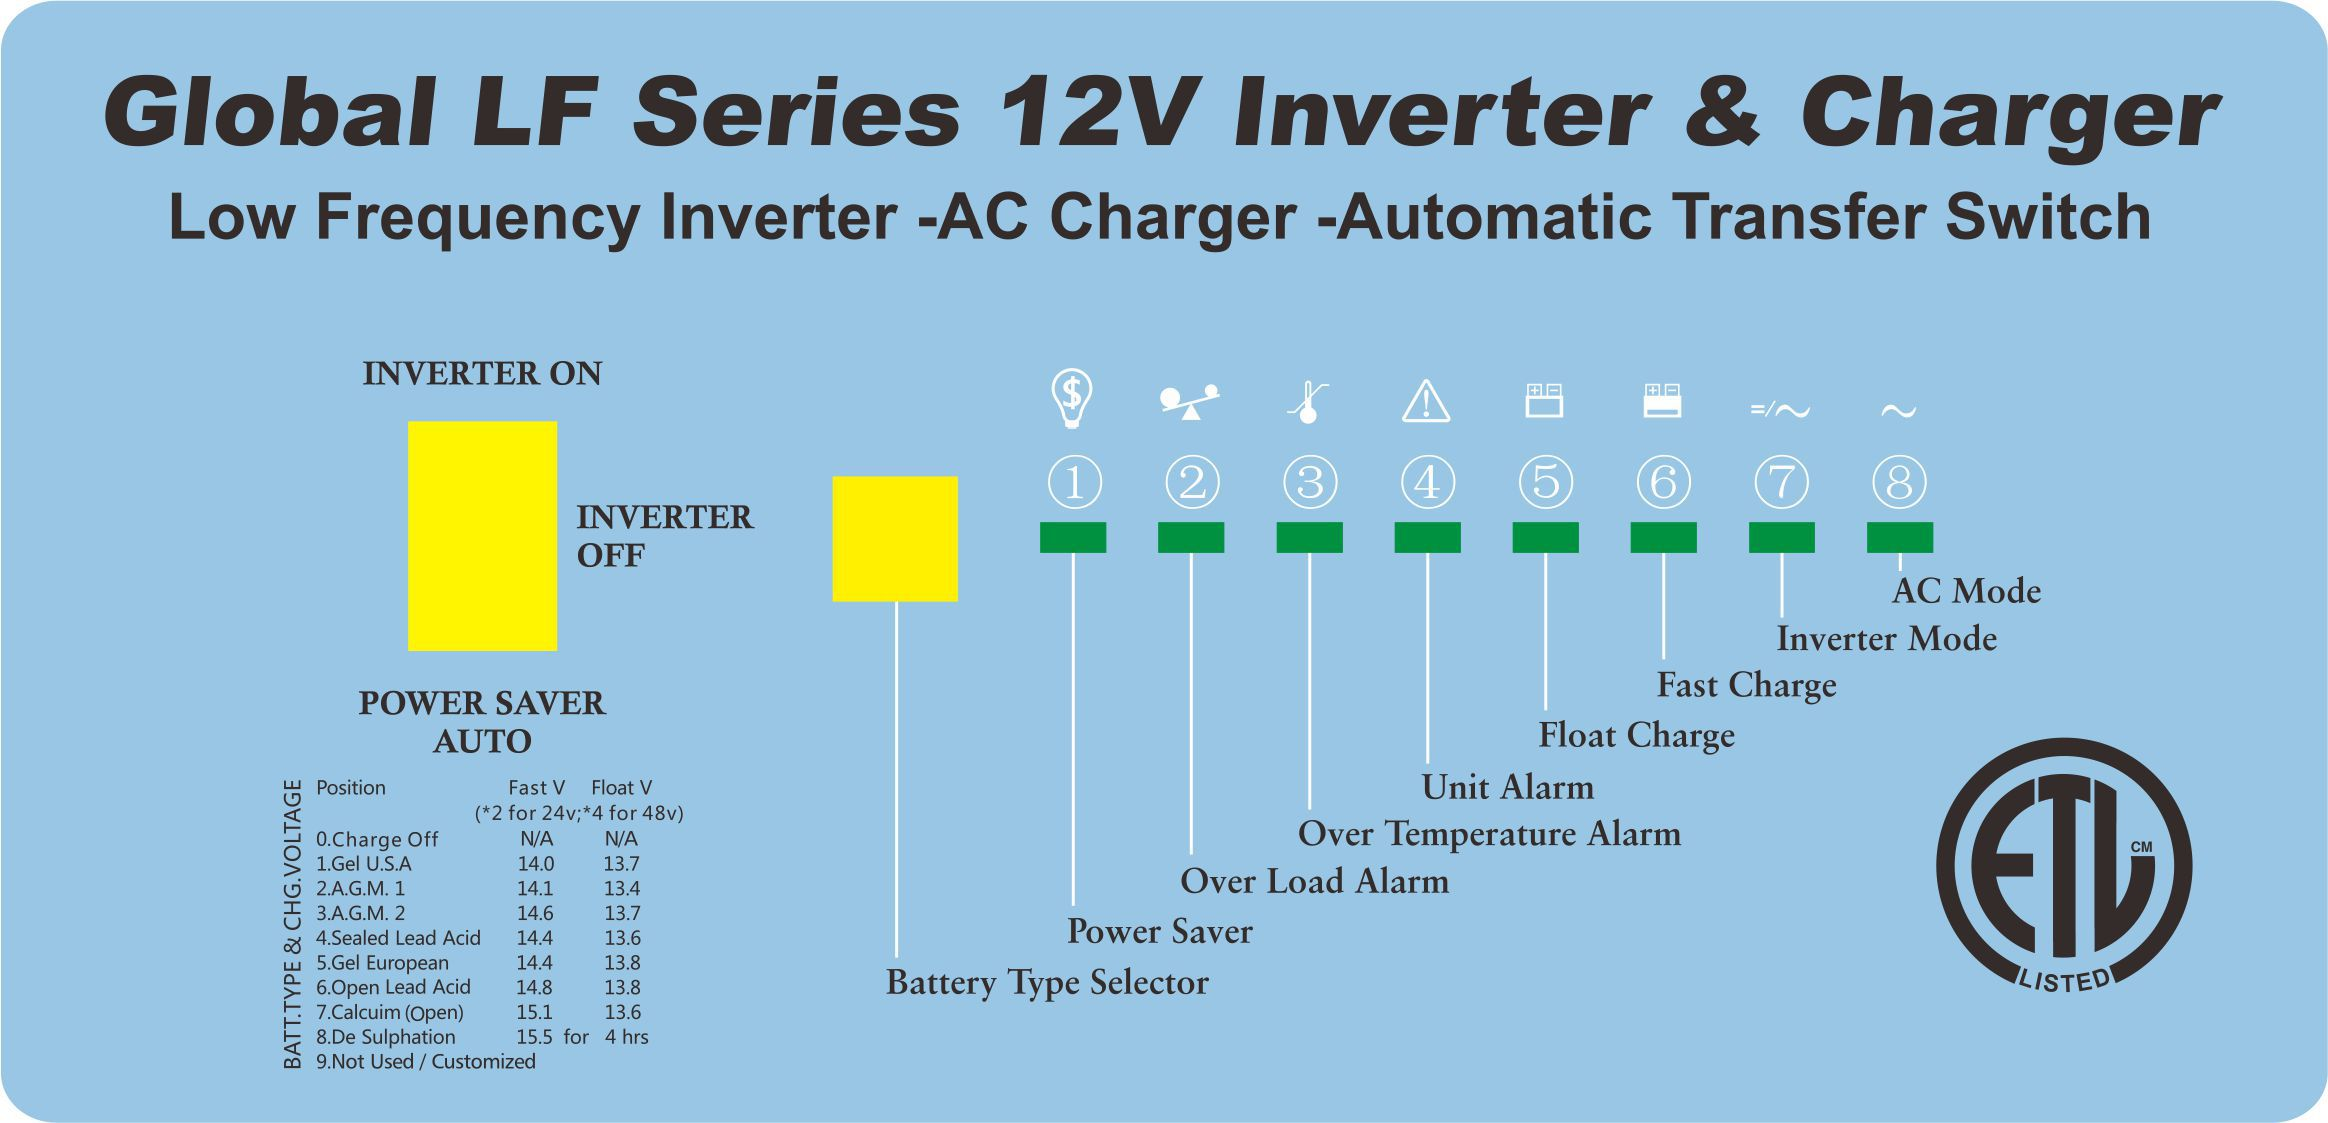 Global LF Series Pure Sine Wave Inverter/ Charger User s Manual - PDF